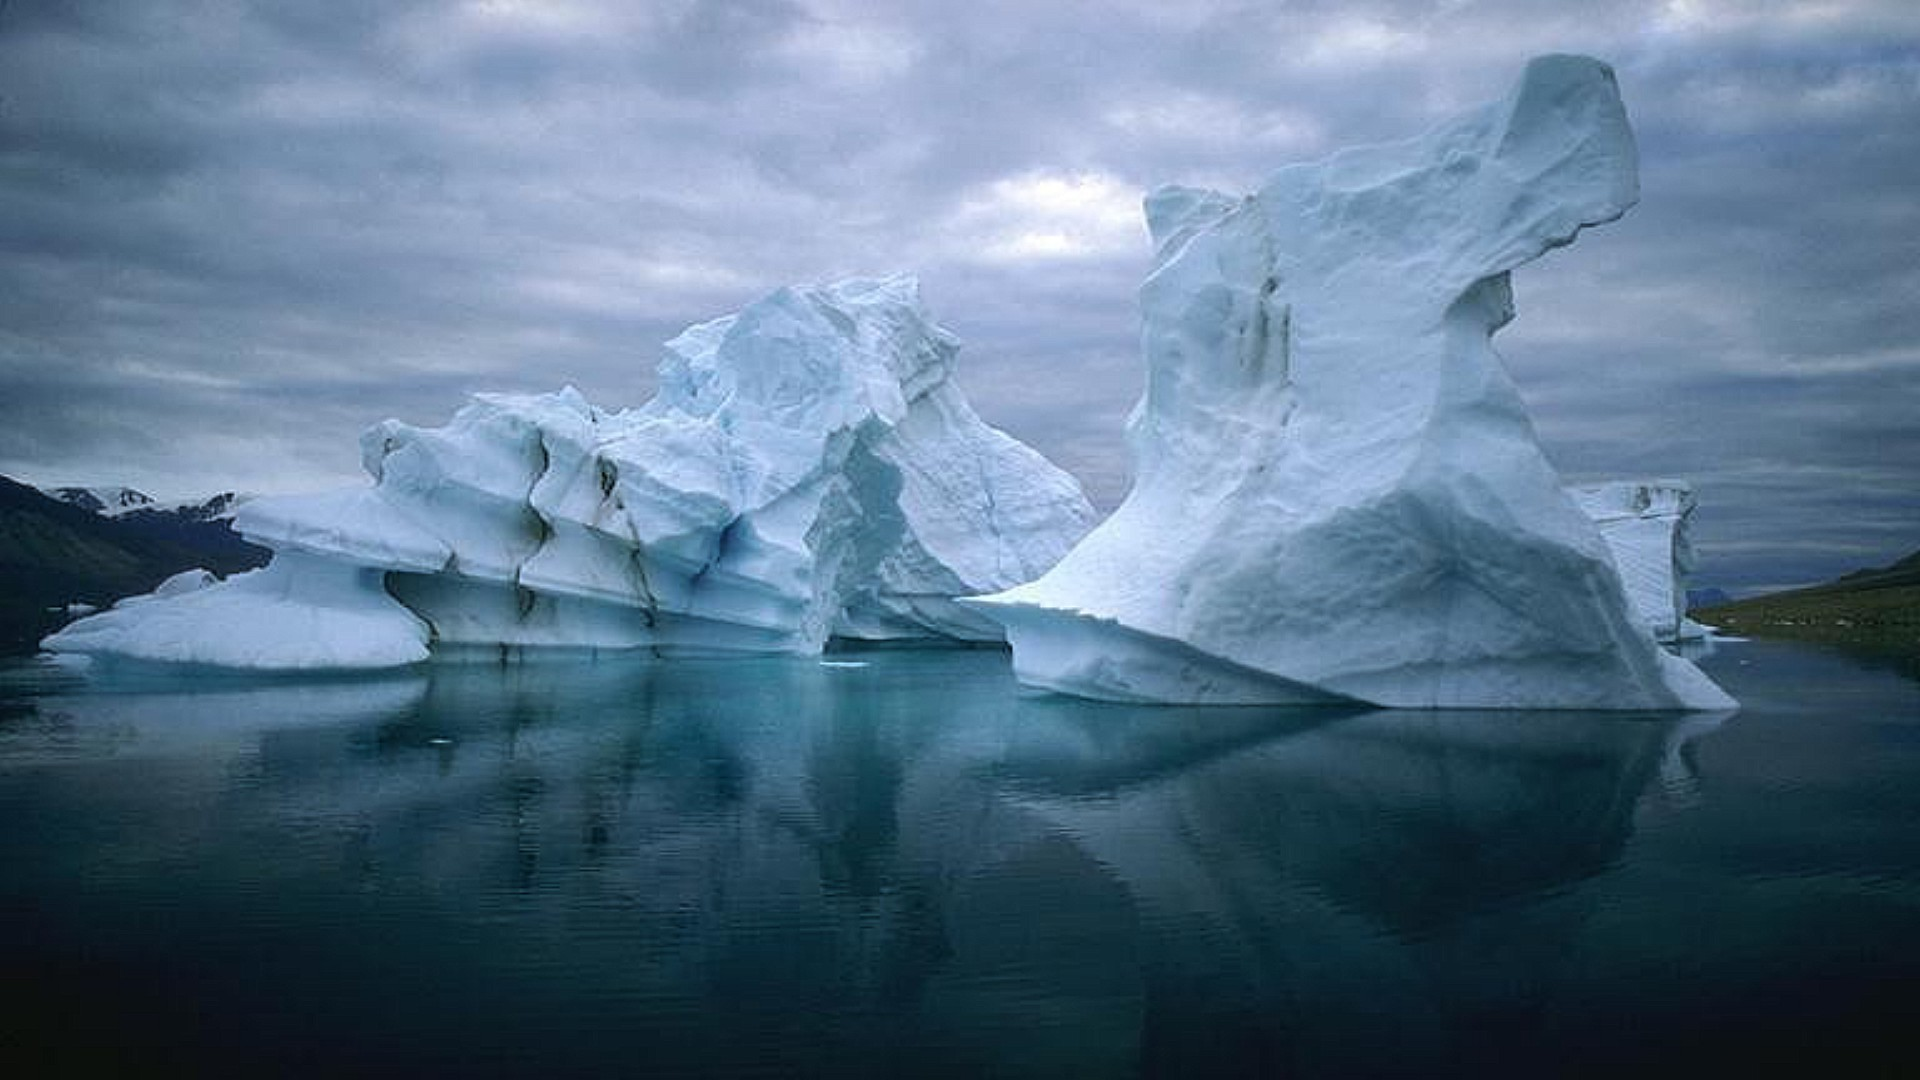 ice iceberg glacier frosty melting water snow frozen cold landscape winter swimming climate change nature reflection ocean antarctic polar travel